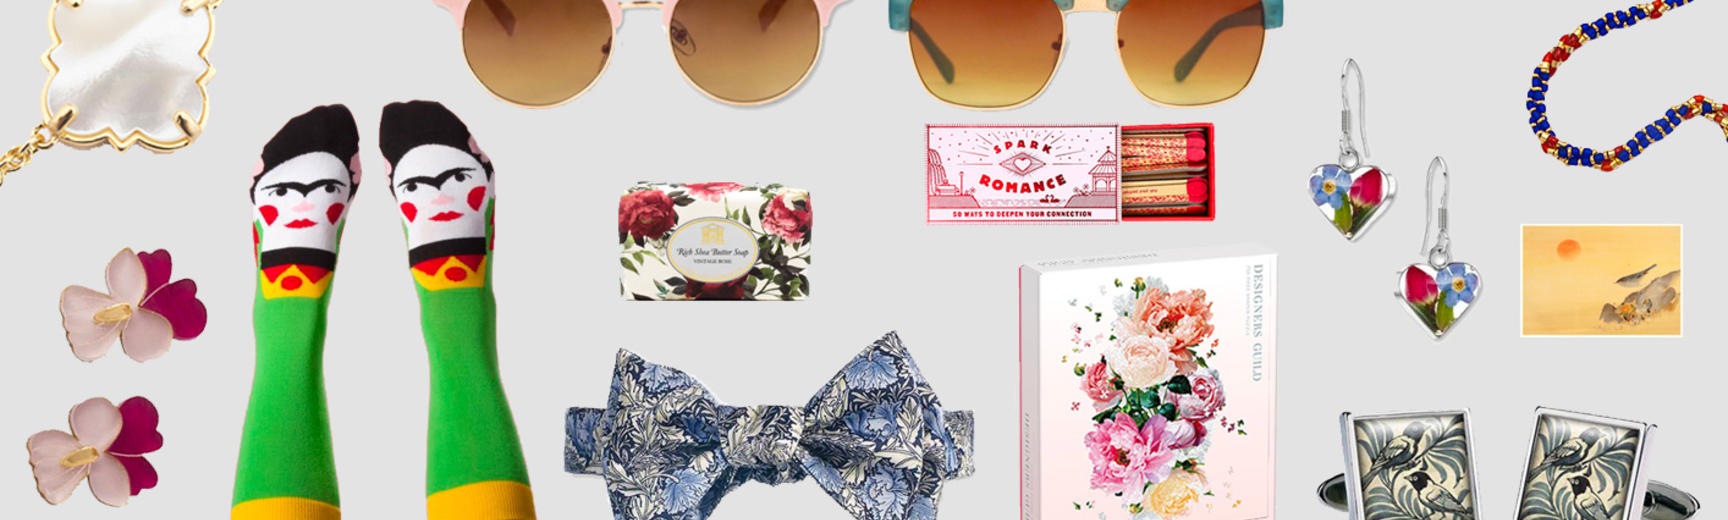 Selection of Valentine's Day Shop Products